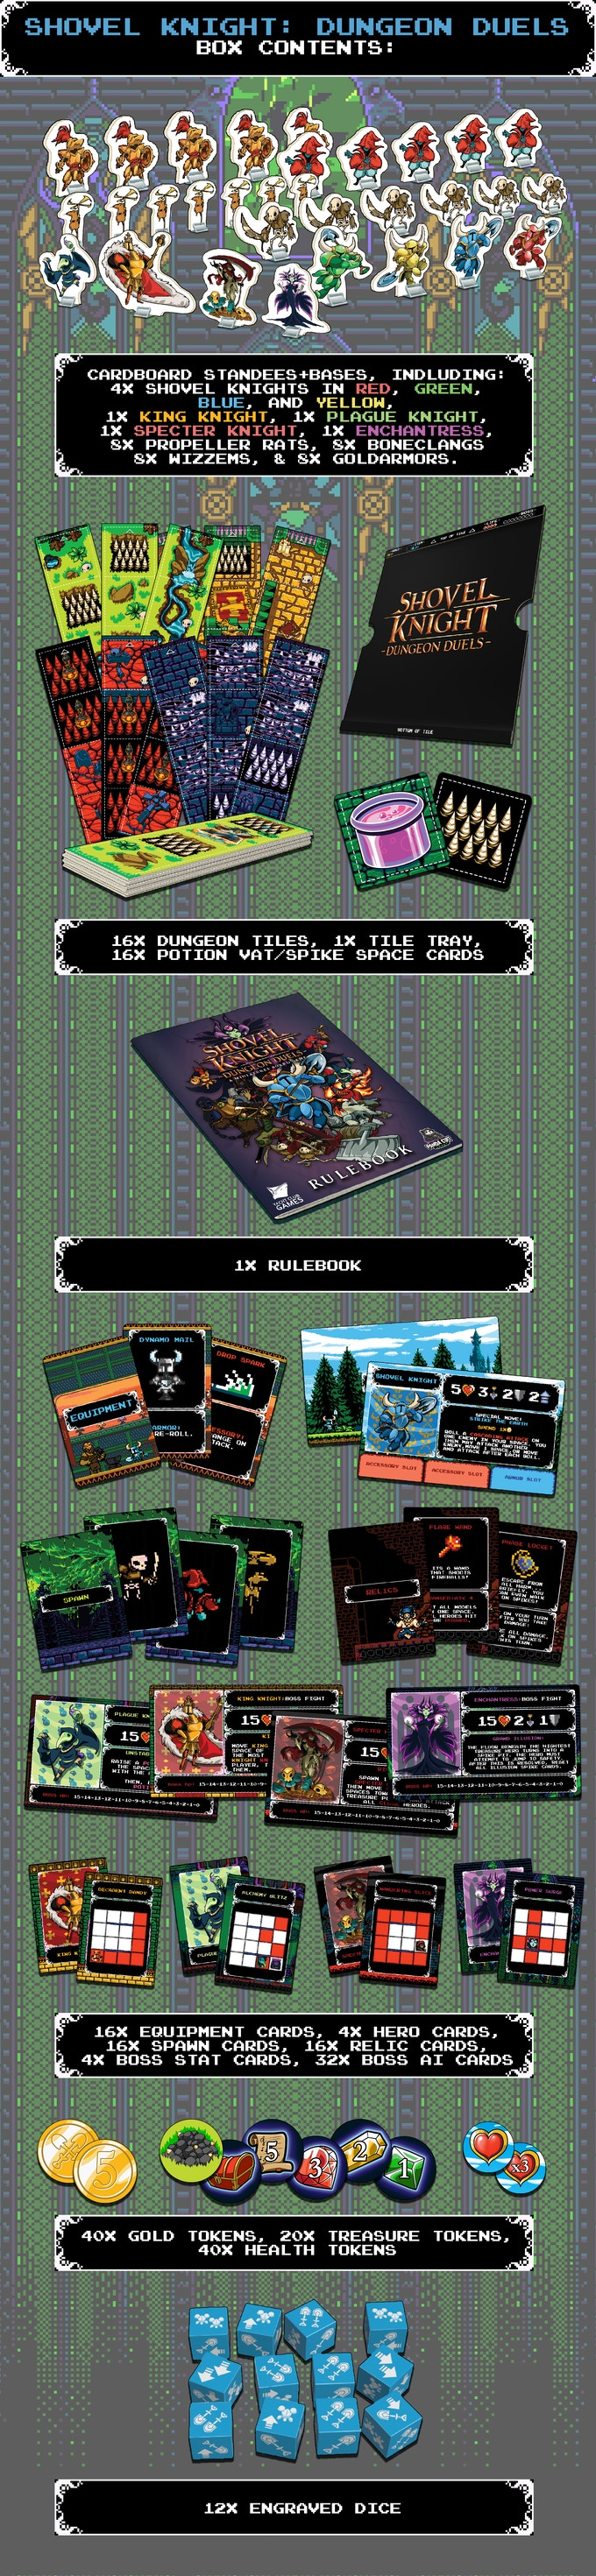 Shovel Knight: Dungeon Duels by Panda Cult Games — Kickstarter